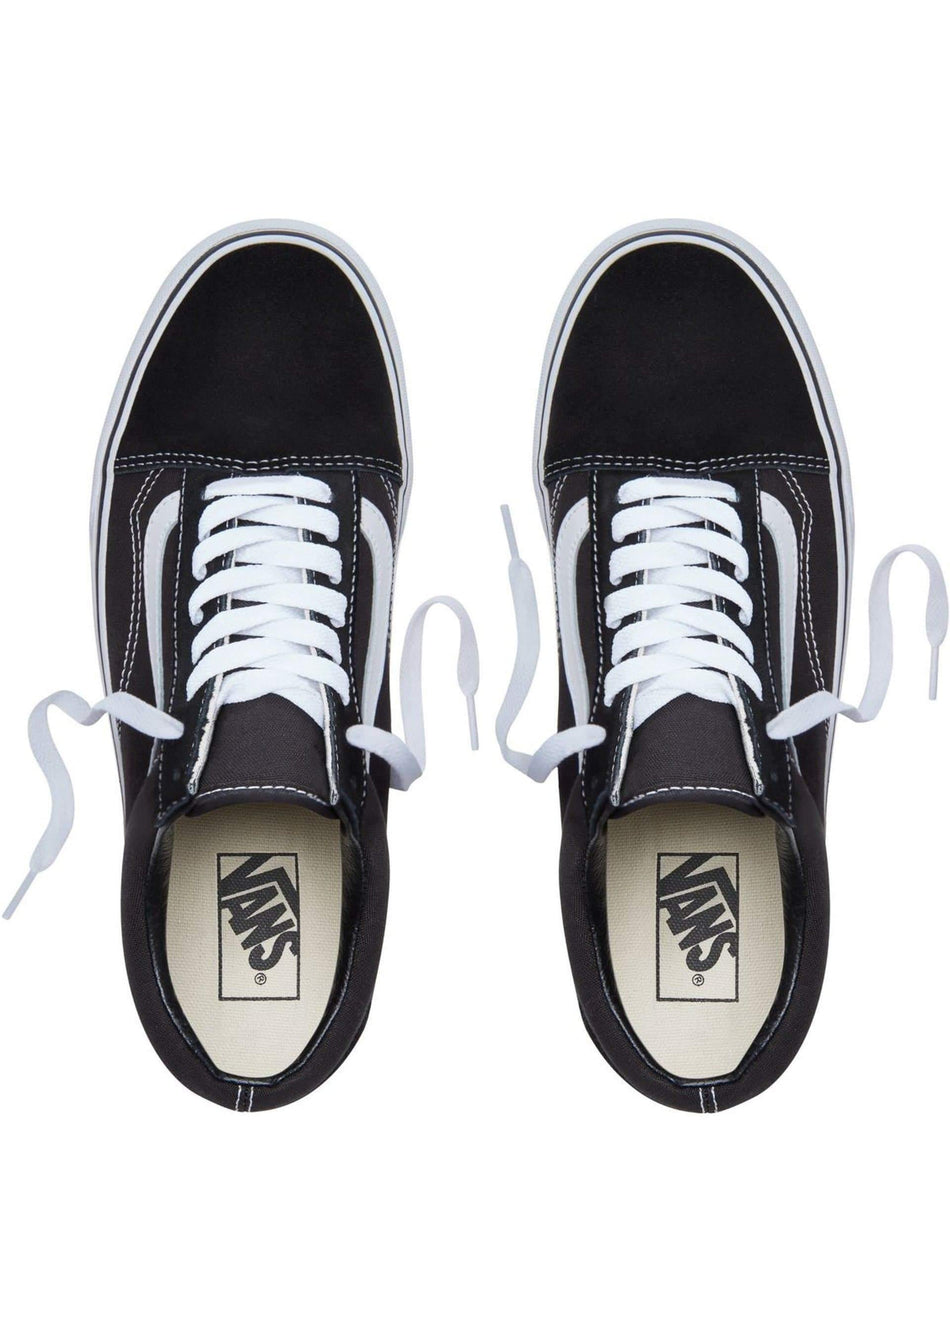 scarpe old skool 36 anaheim factory VANS - Vittorio Citro Boutique